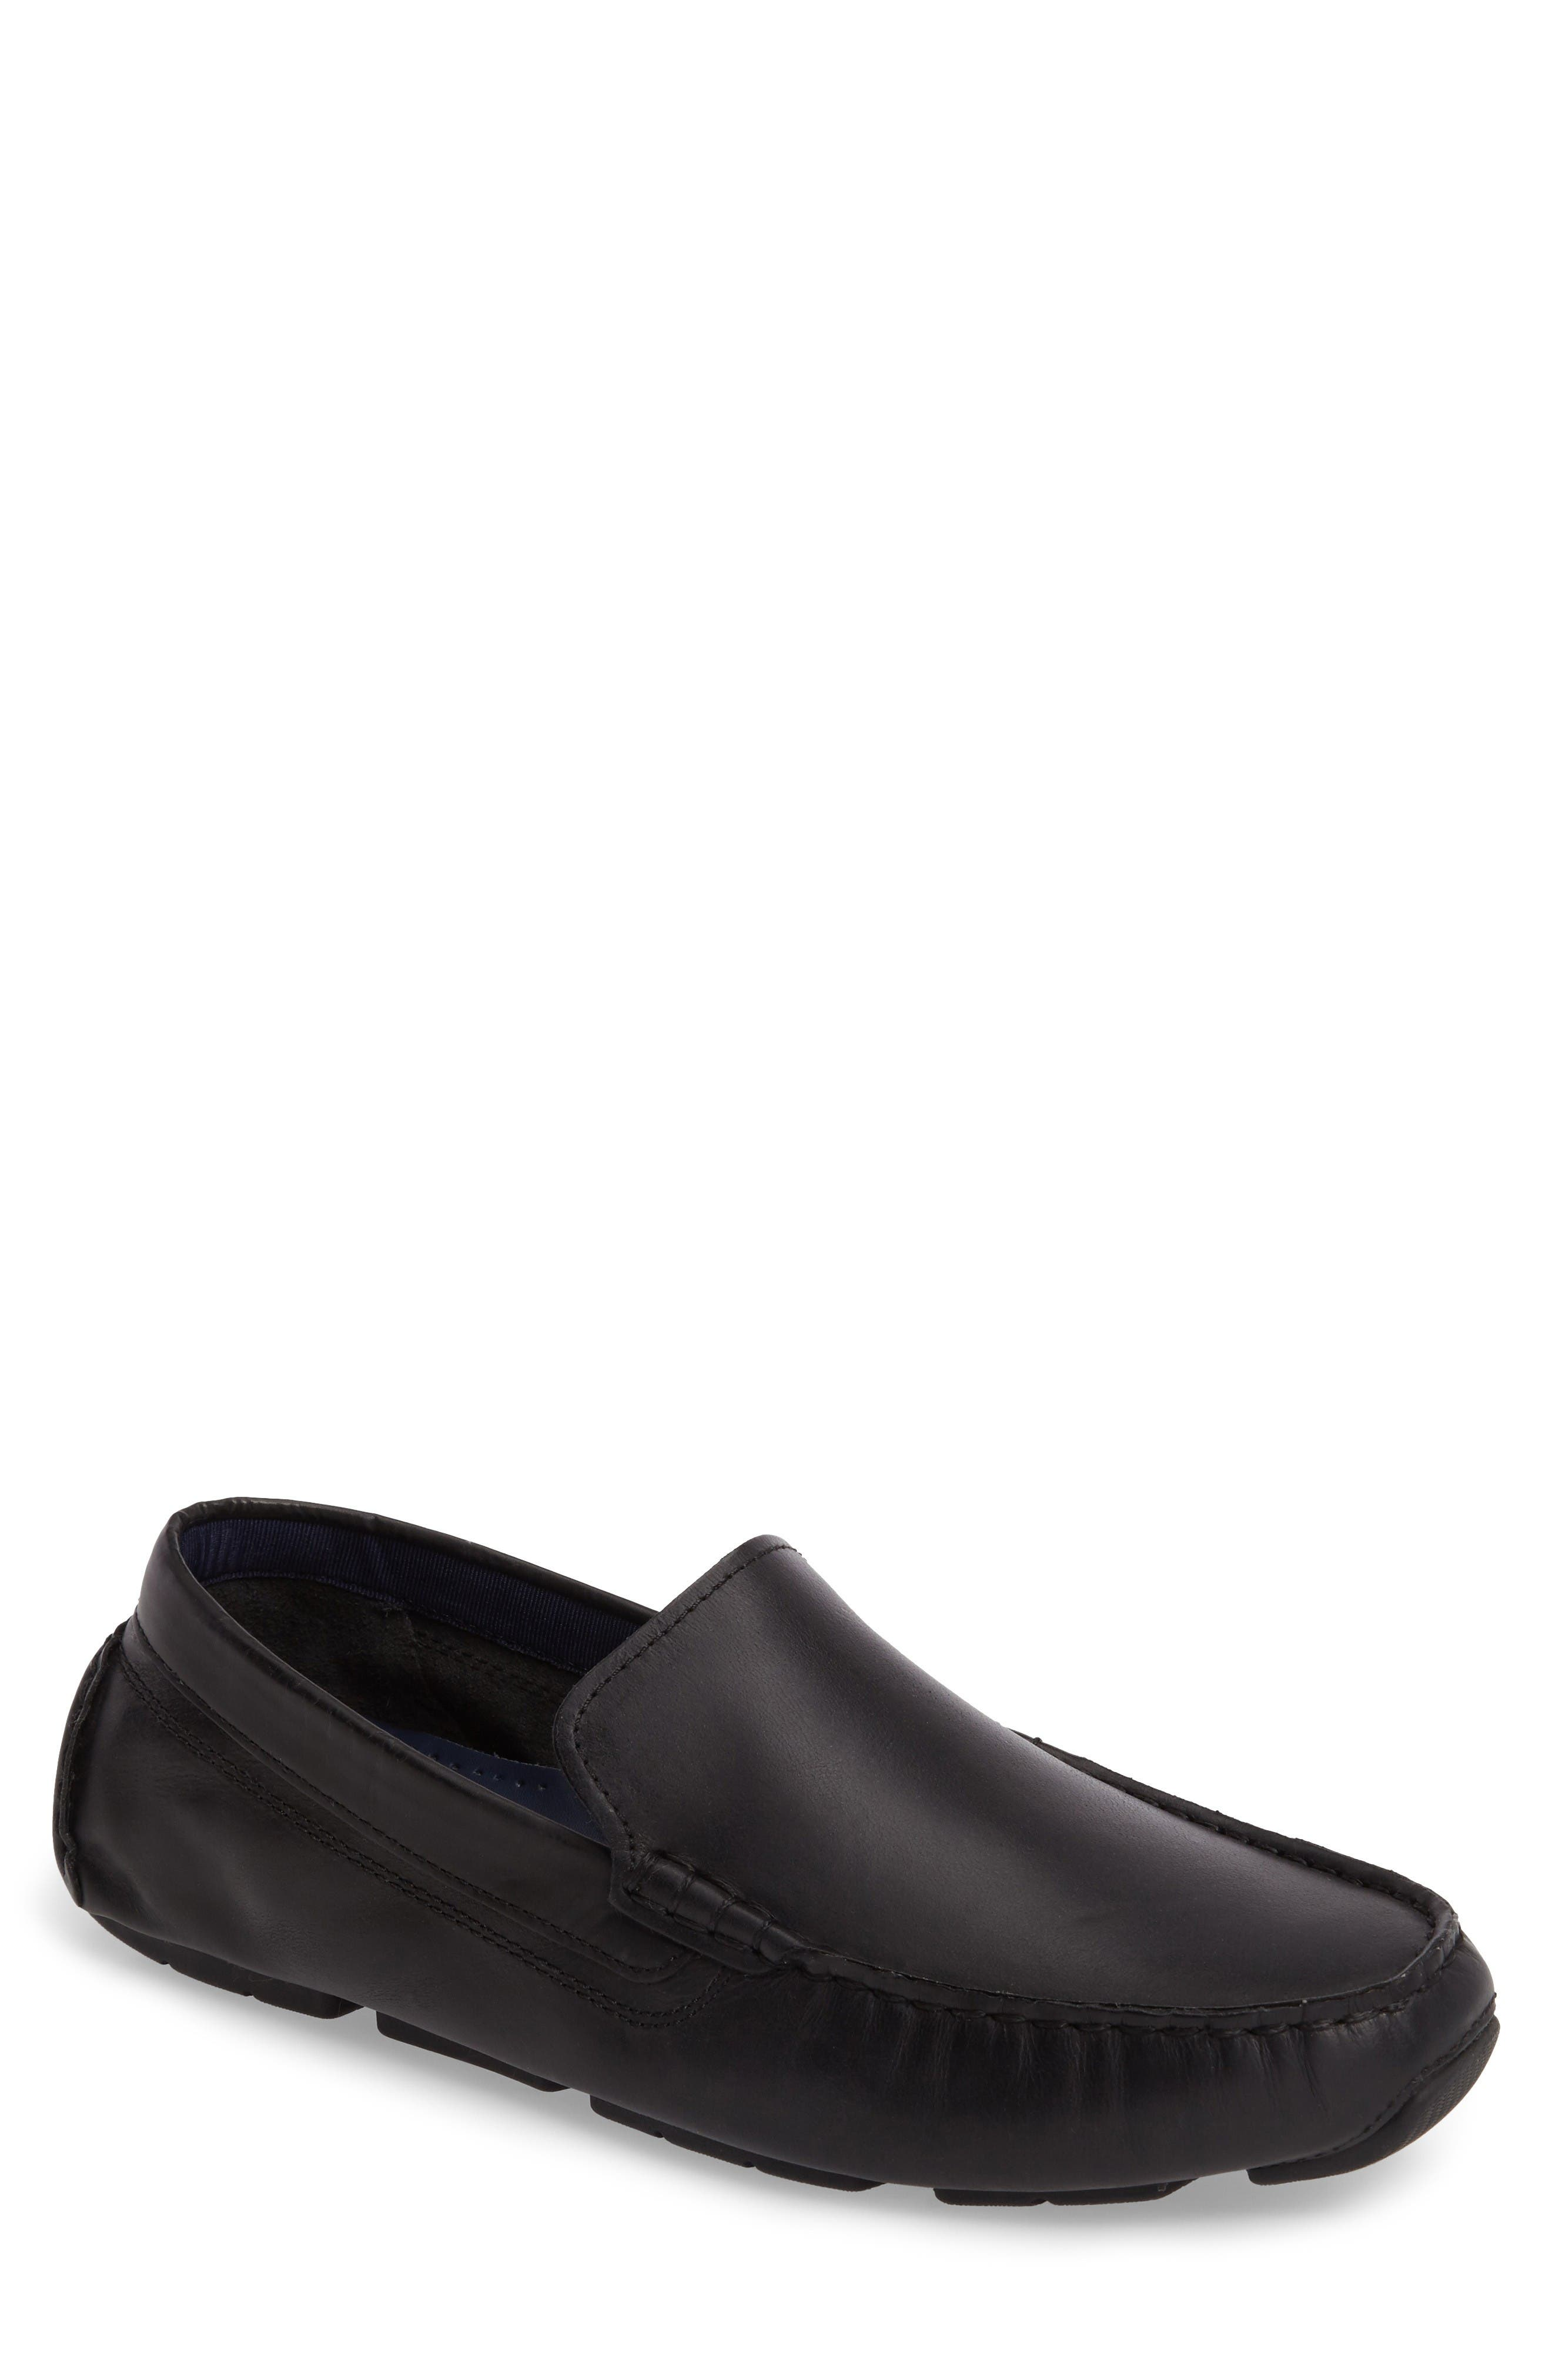 Main Image - Cole Haan Kelson Venetian Driving Loafer (Men)